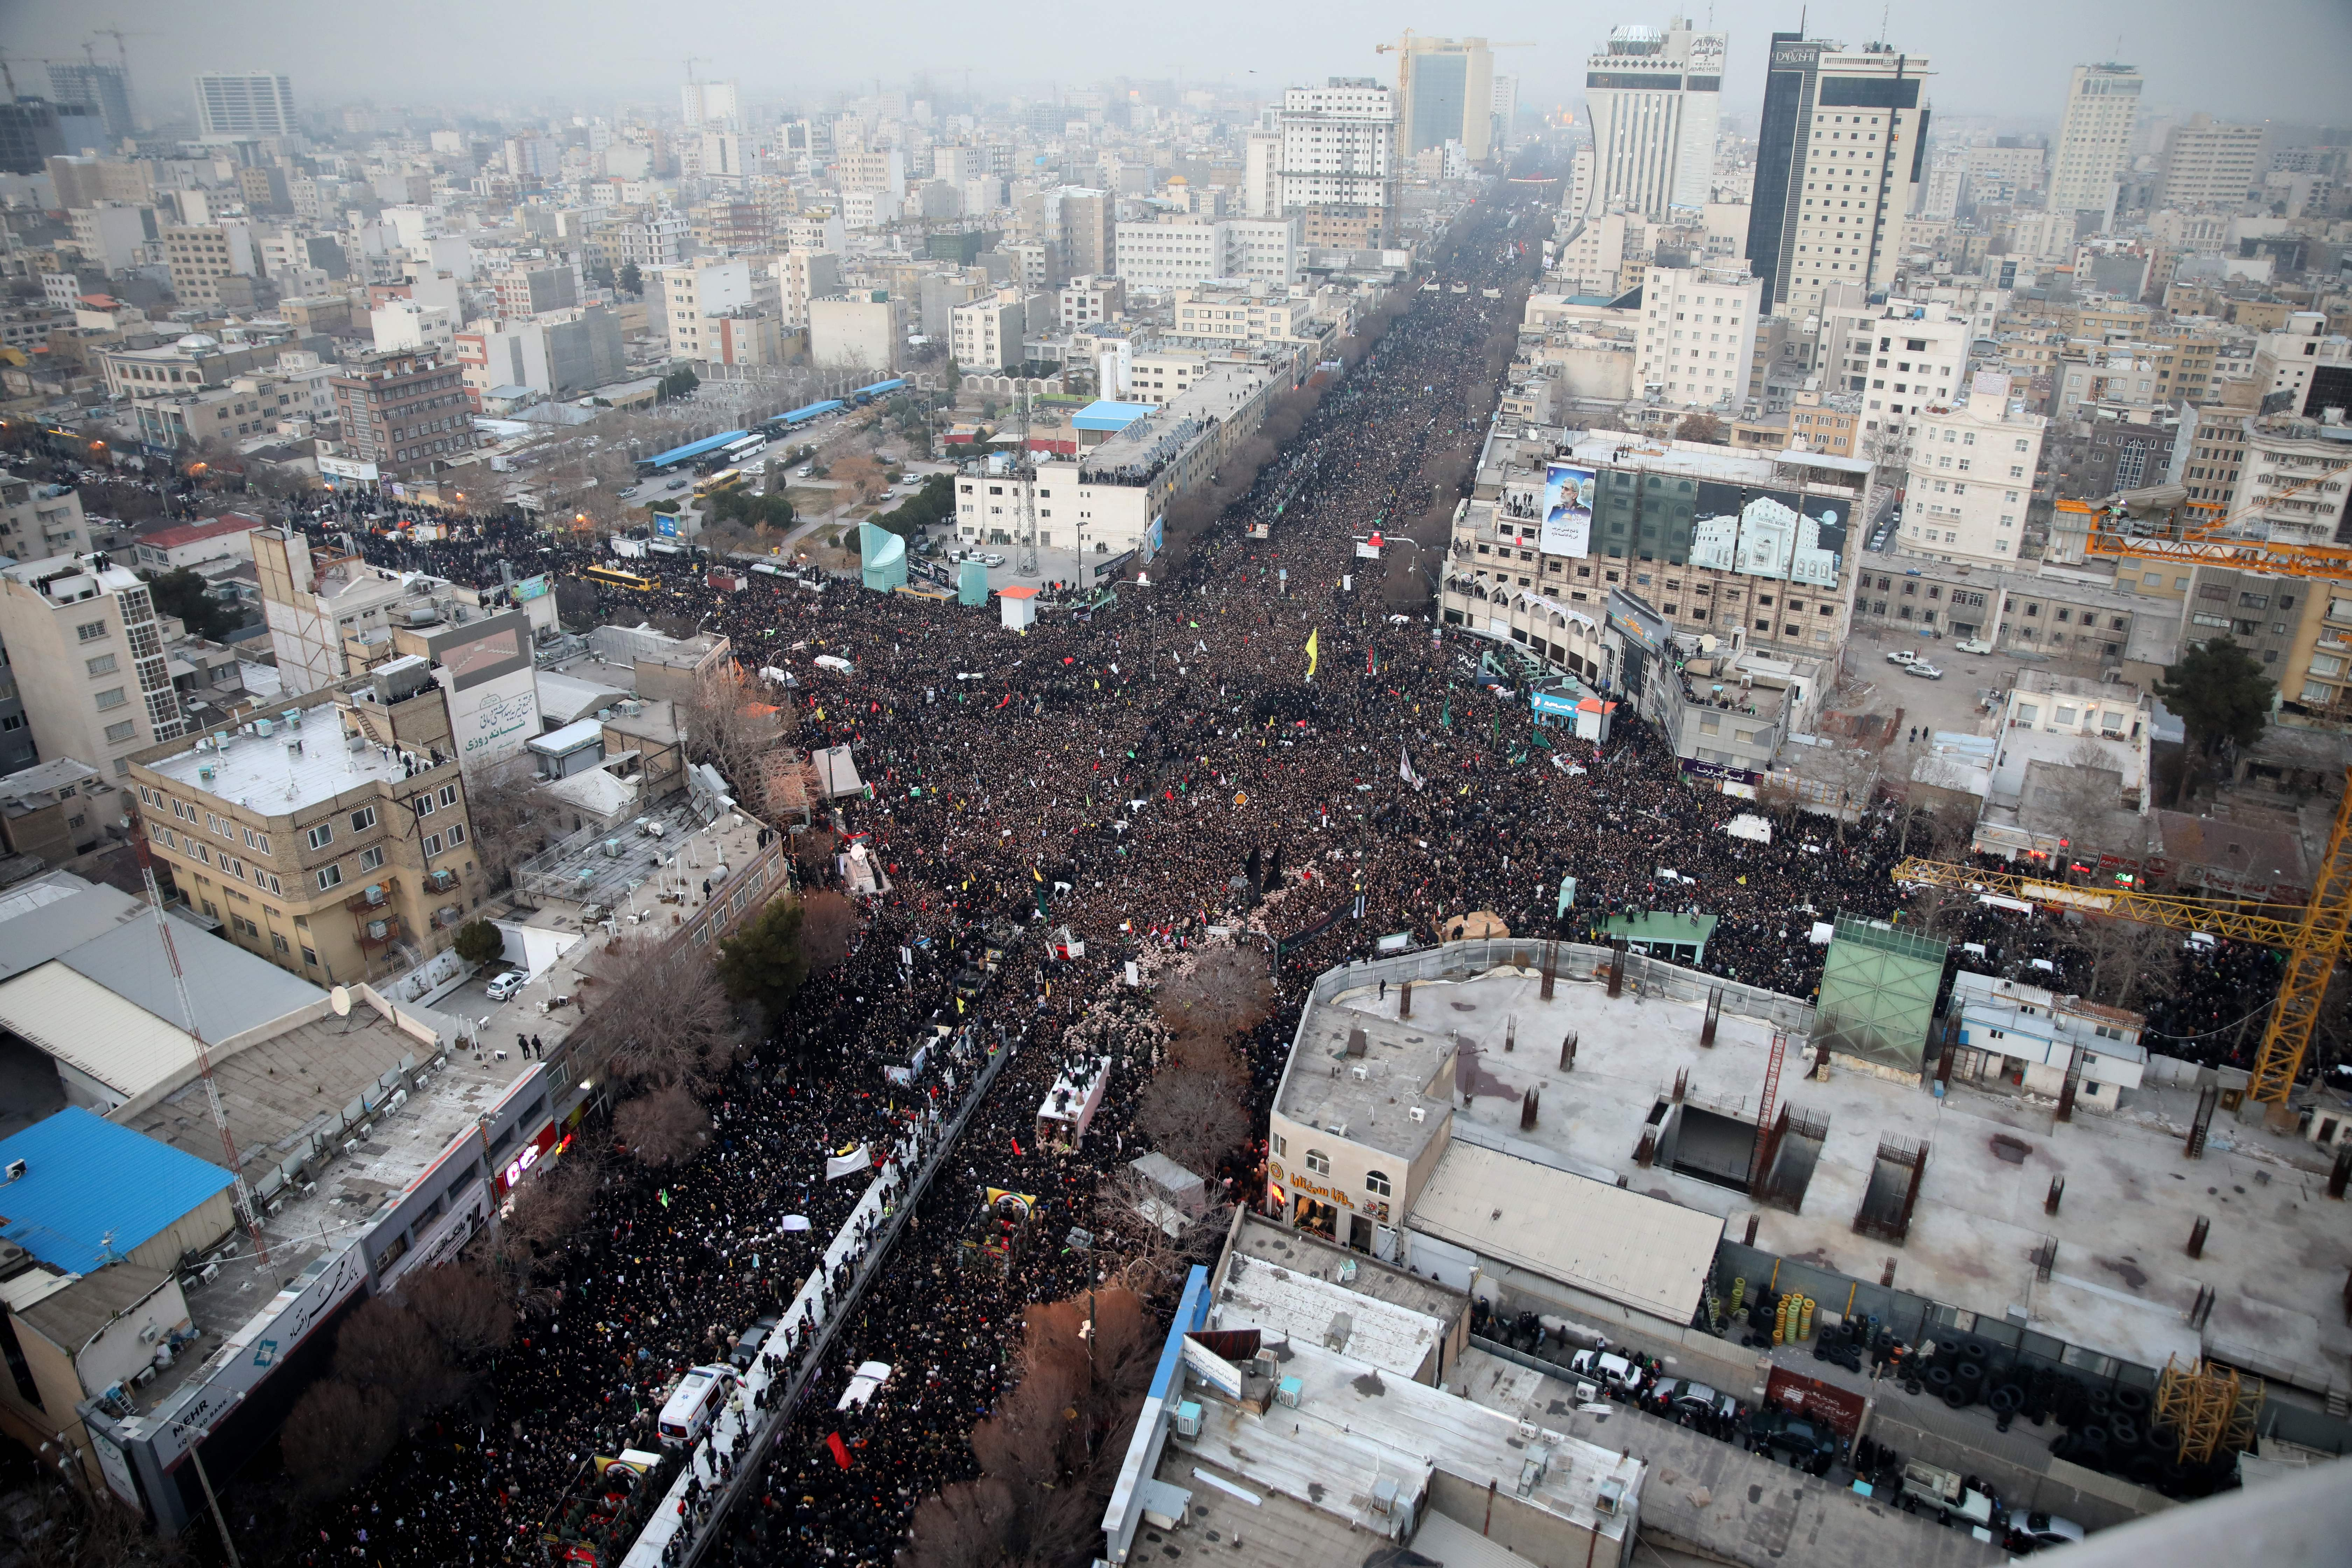 Iranians march behind a vehicle carrying the coffins of slain major general Qasem Soleimani and others as they pay homage in the northeastern city of Mashhad on Jan. 5.